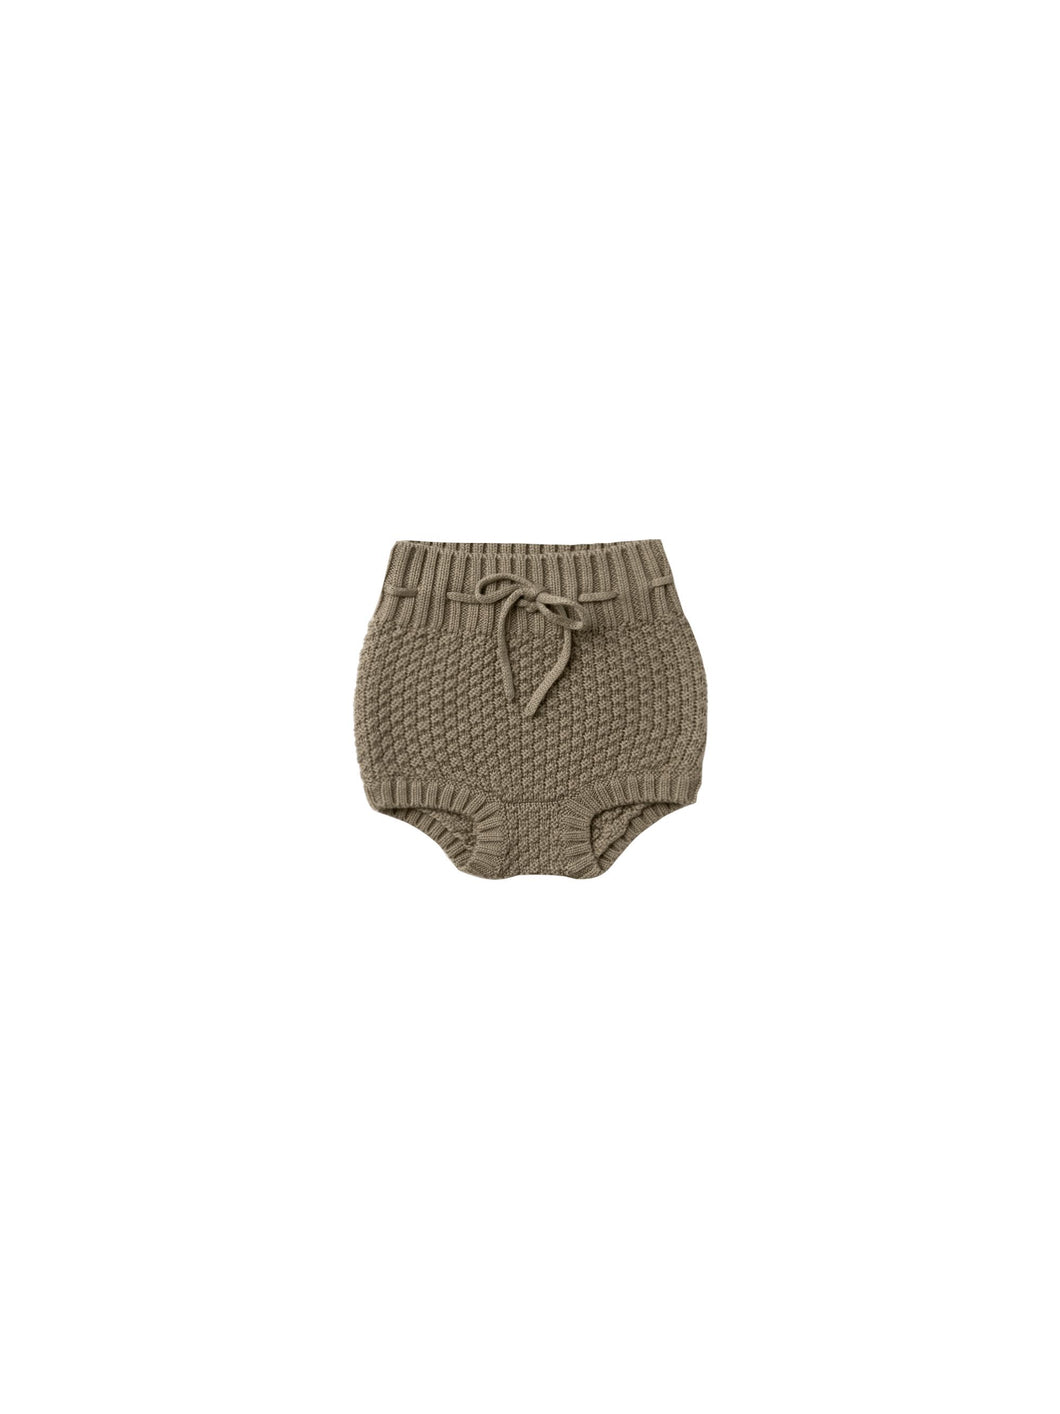 Quincy Mae knit tie bloomer - olive